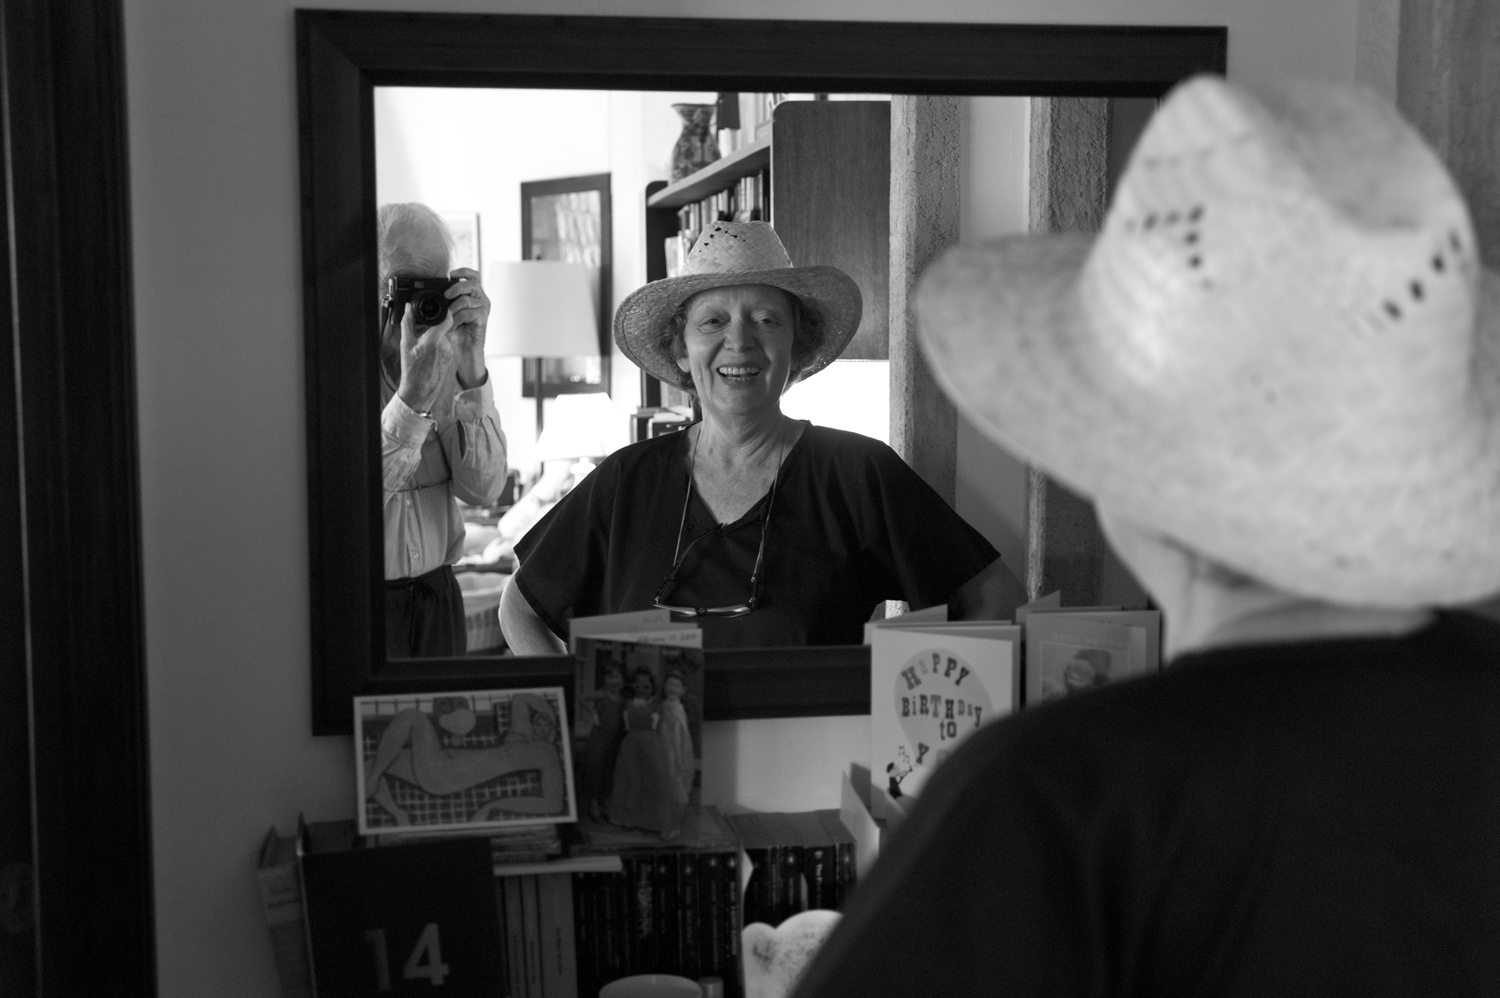 12 June 2014: Jürgen Schadeberg's wife, Claudia, shows off a new hat. (Photograph courtesy of the Jürgen Schadeberg estate)